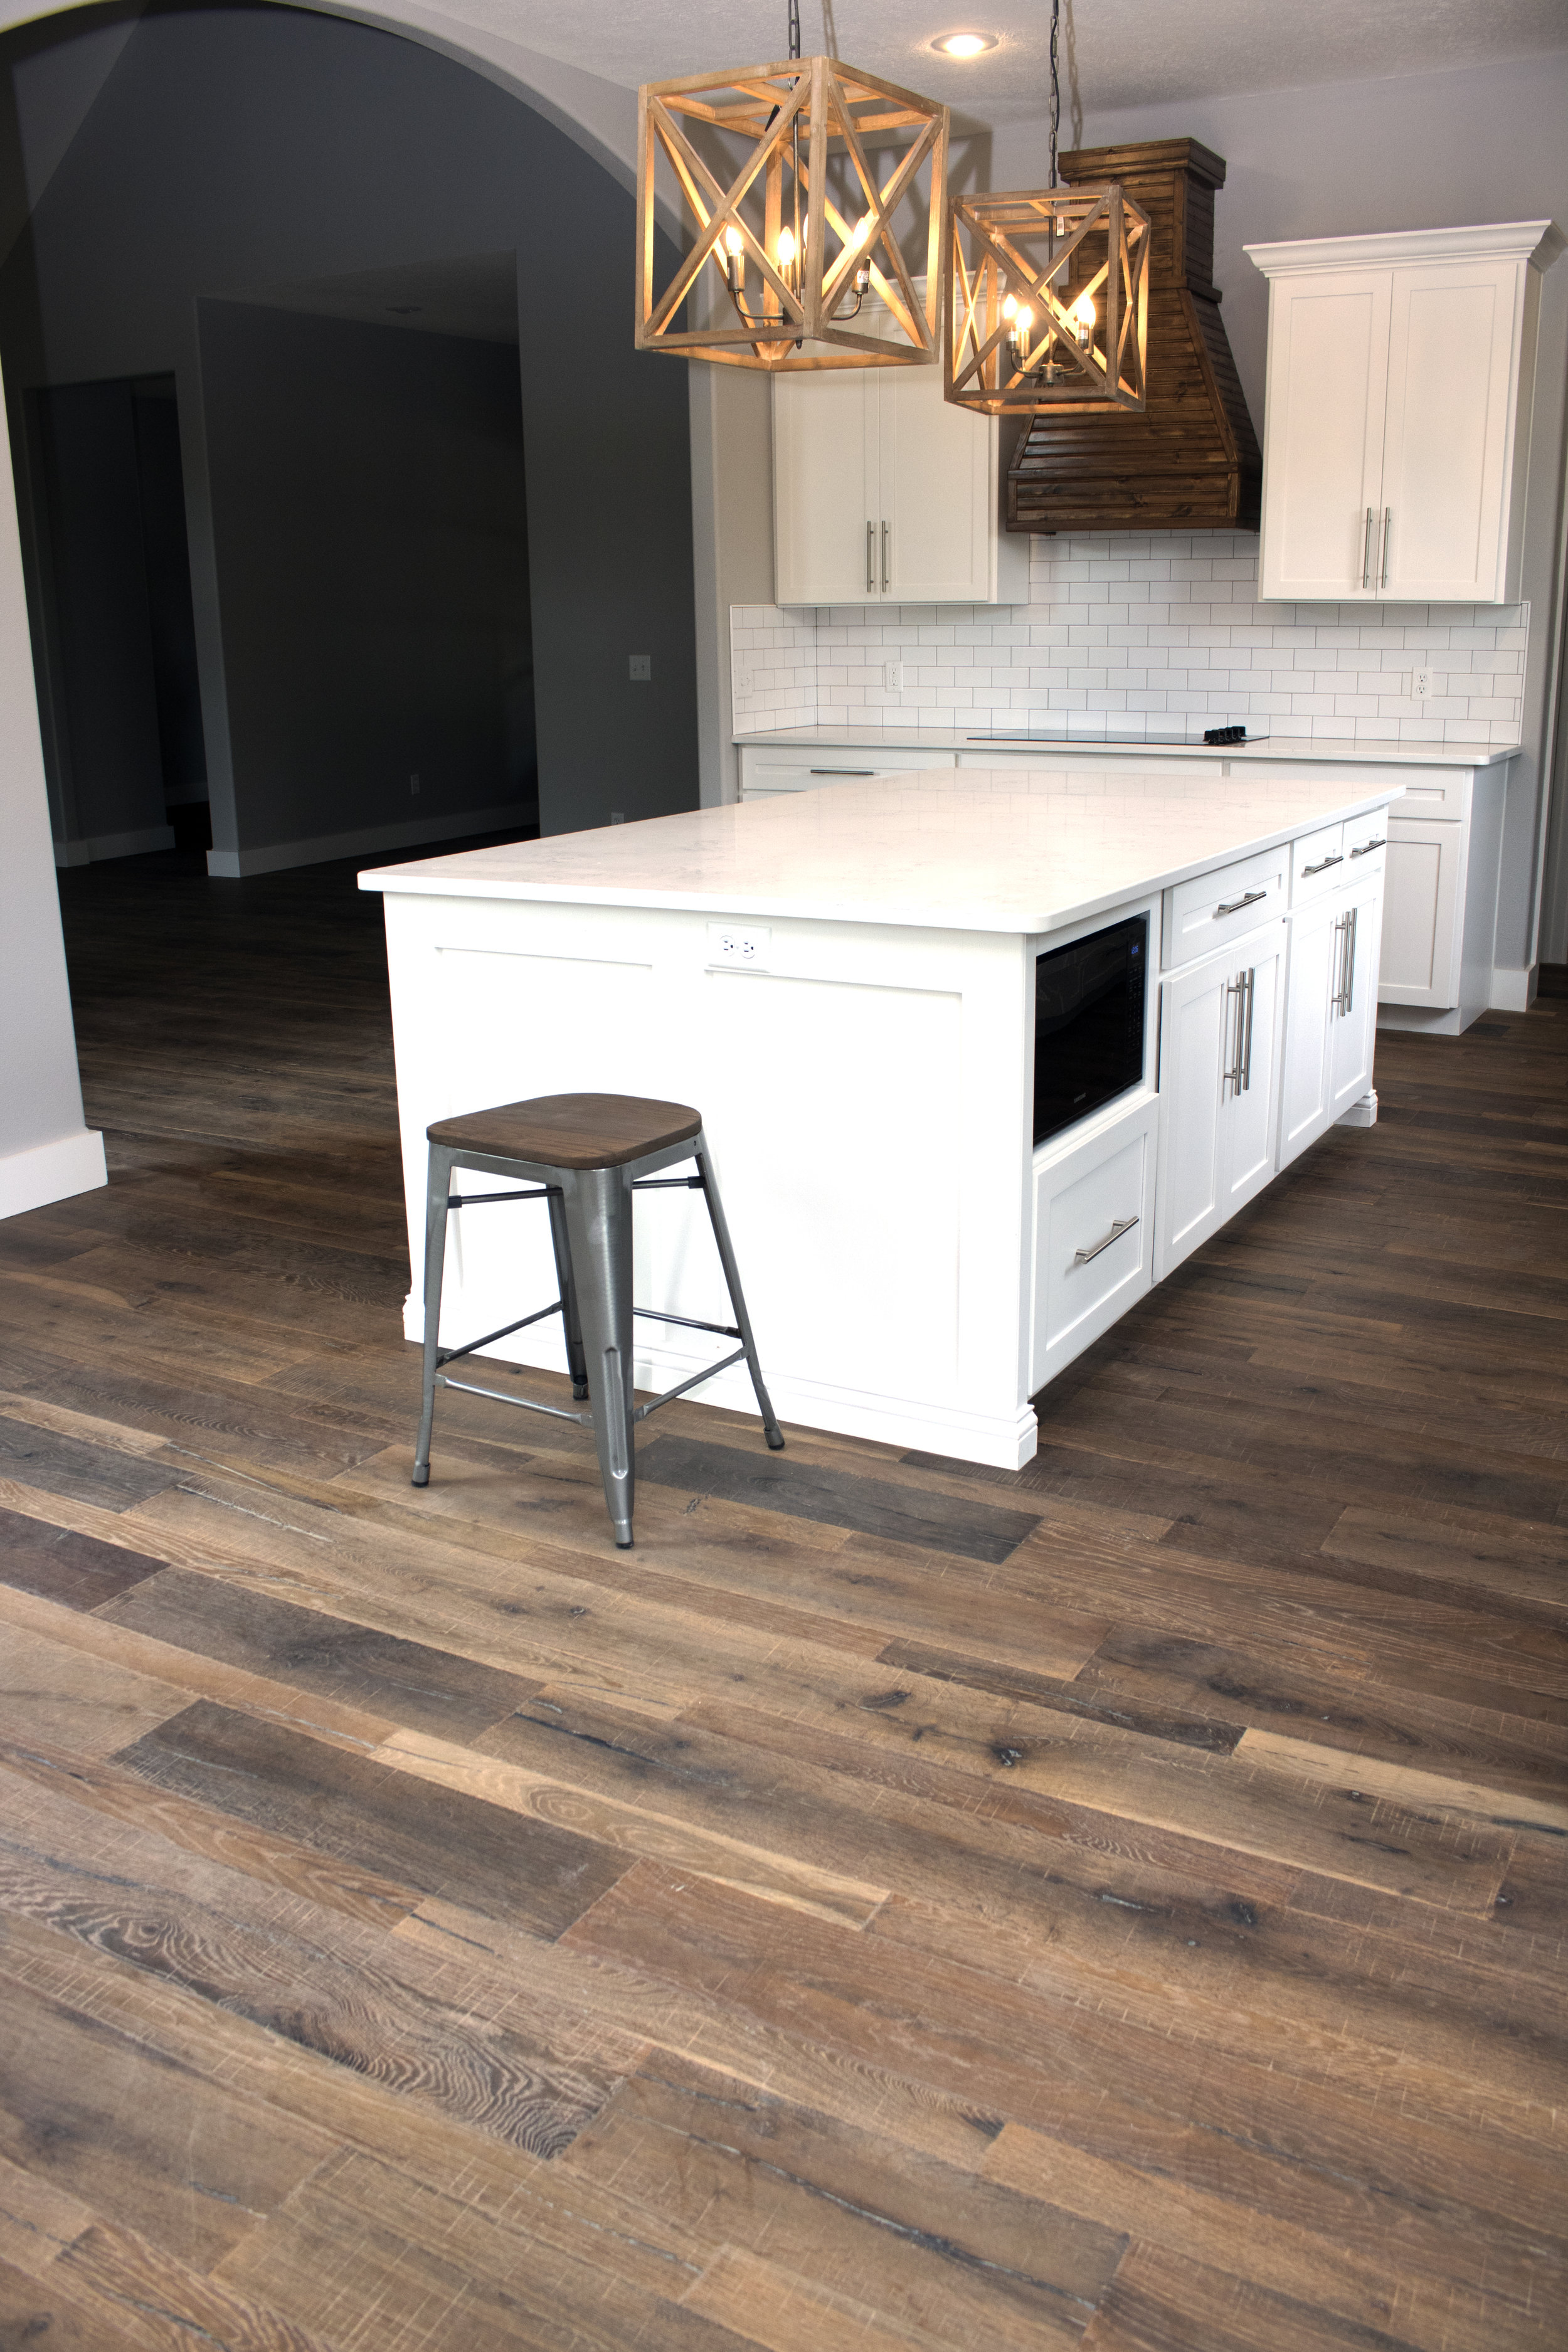 American Backroads Collection European White Oak Hardwood Color Barstow